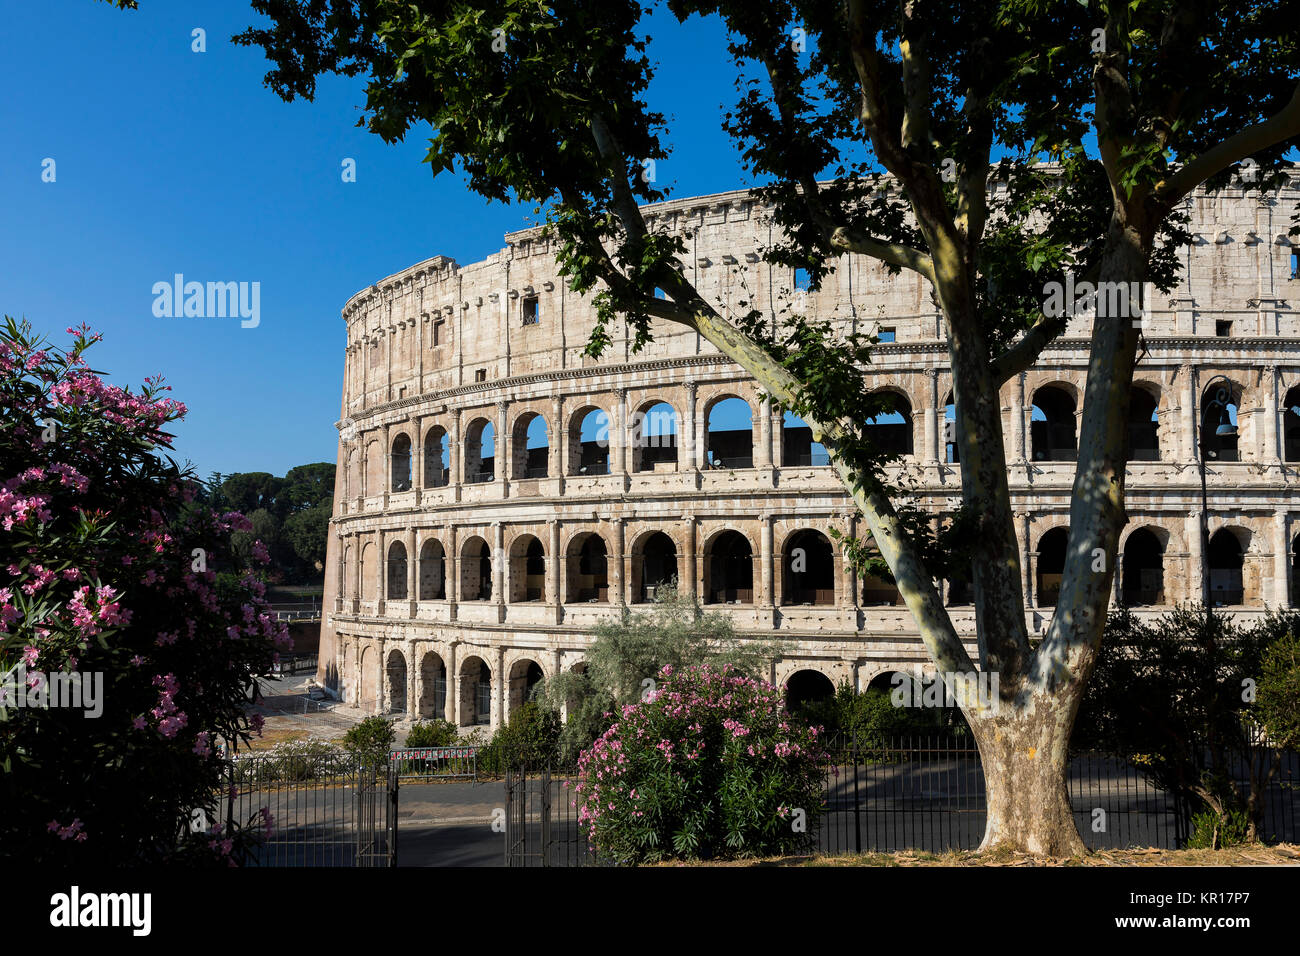 Outside the Roman Colosseum. Rome, Italy - Stock Image